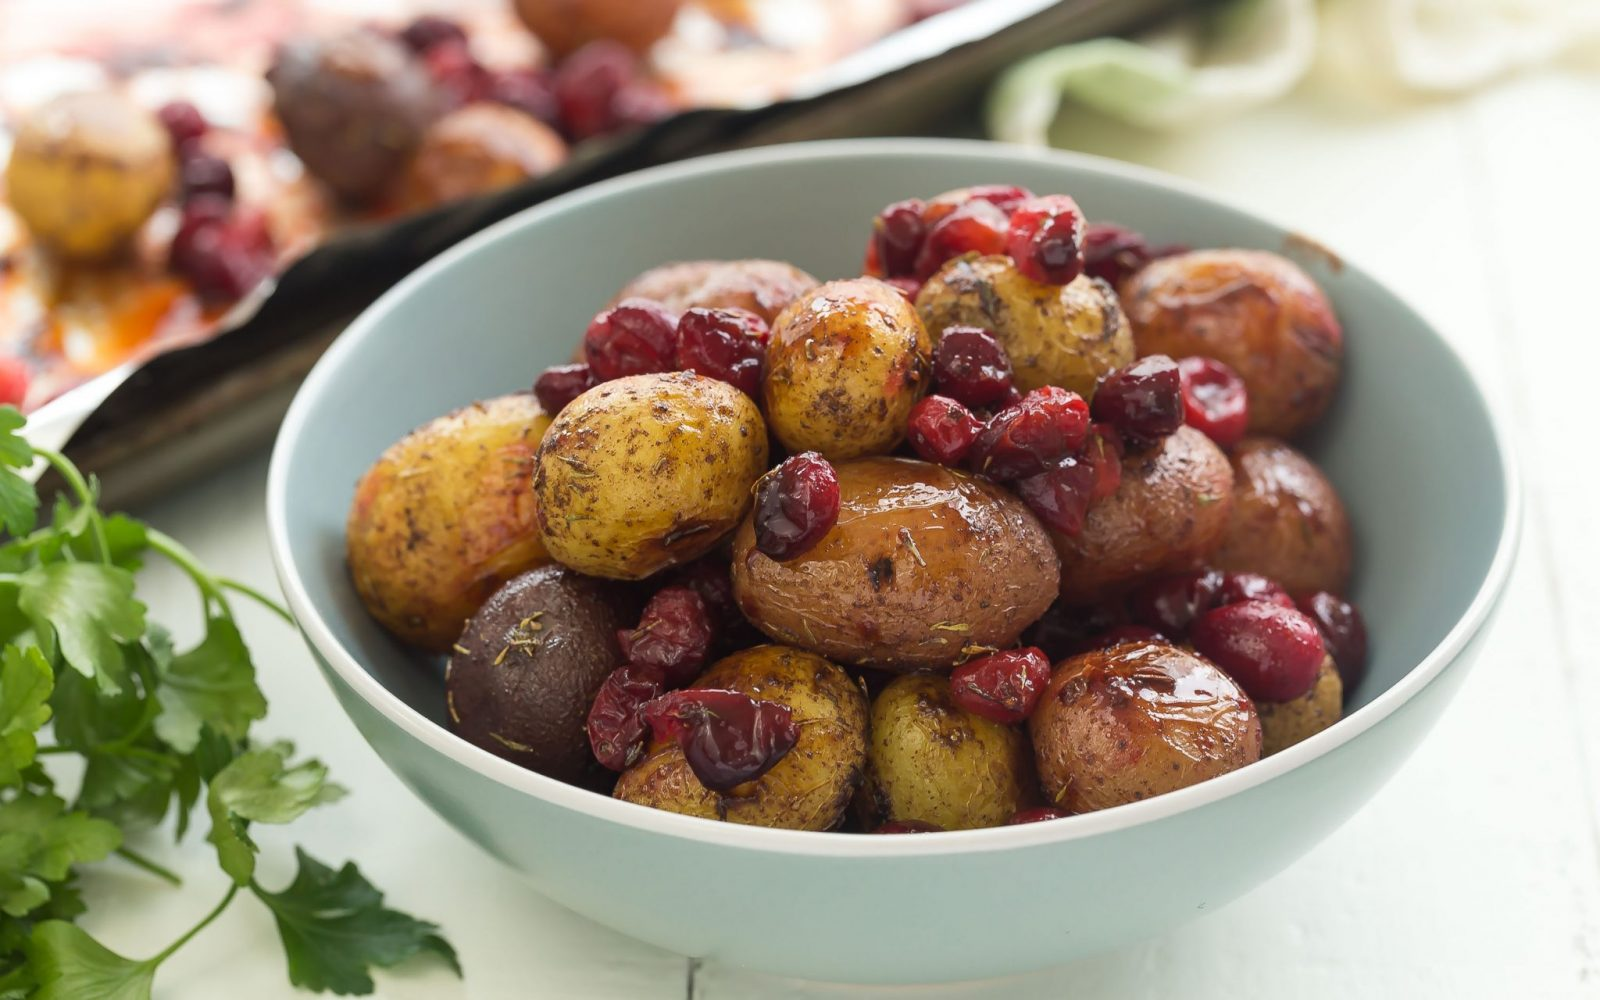 Spiced Roasted Potatoes and Cranberries